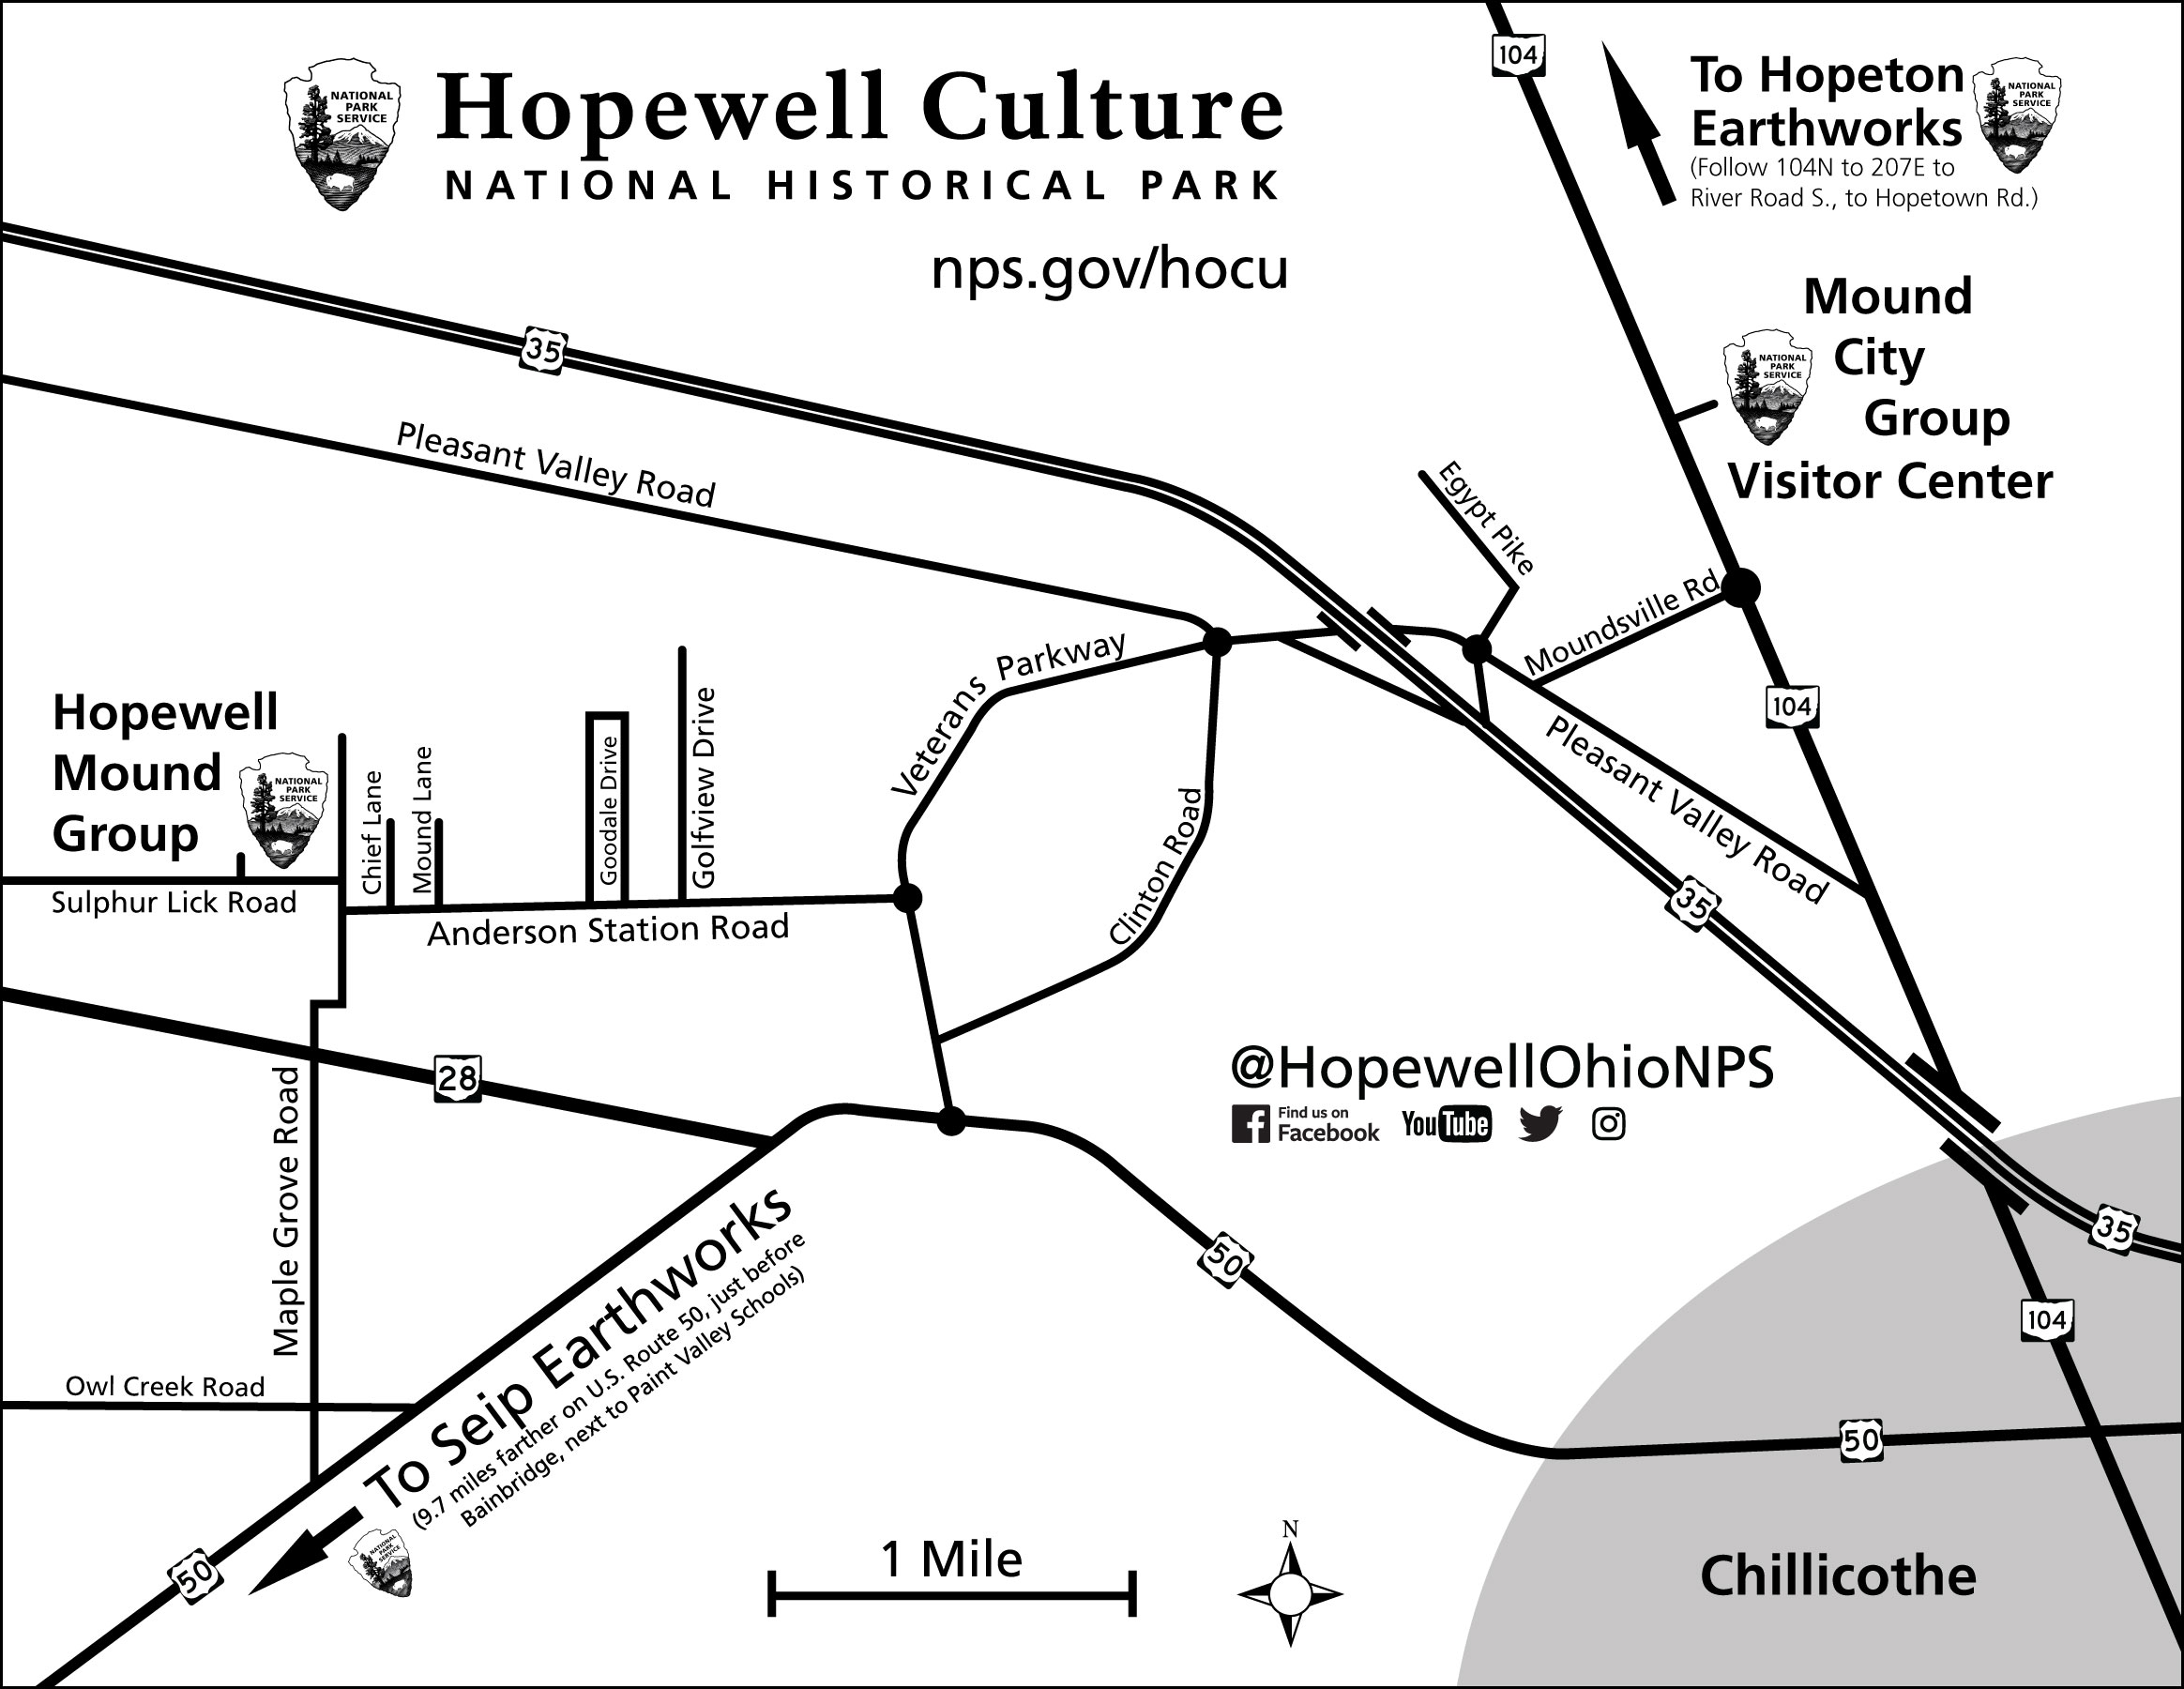 Maps - Hopewell Culture National Historical Park (U.S. ... Driving Map Of Ohio on cities in central ohio, road map of eastern ohio, bucyrus bratwurst festival ohio, map of i 70 in ohio, detailed map of ohio, us state map ohio, train map of ohio, large maps of ohio, usa map ohio, all cities in ohio, basic map of northwest ohio, rand mcnally map of ohio, downloadable maps of ohio, employment map of ohio, i-90 map ohio, map of greenfield ohio, weather painesville ohio, street map of tallmadge ohio, driving map kentucky, driving map connecticut,